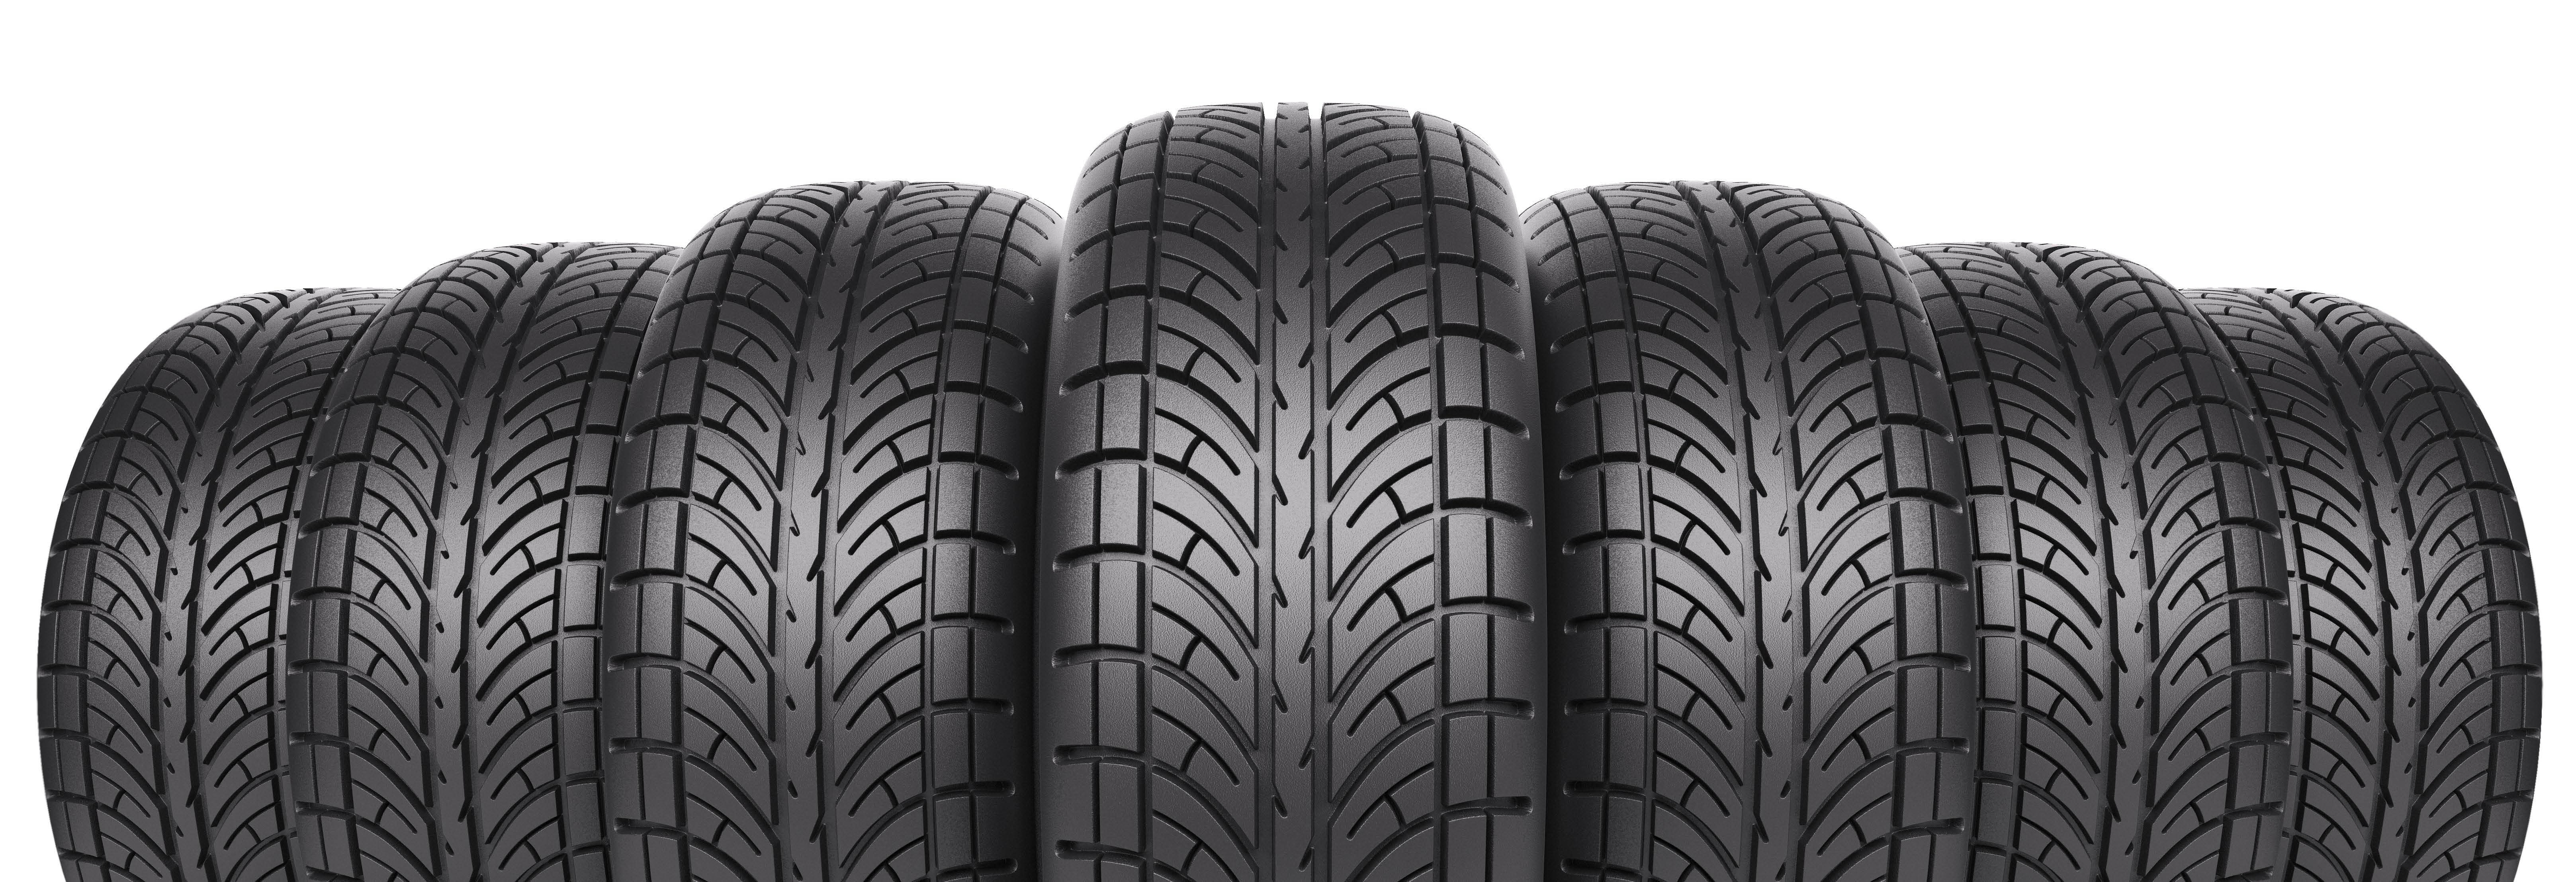 shop tires hopewell jct